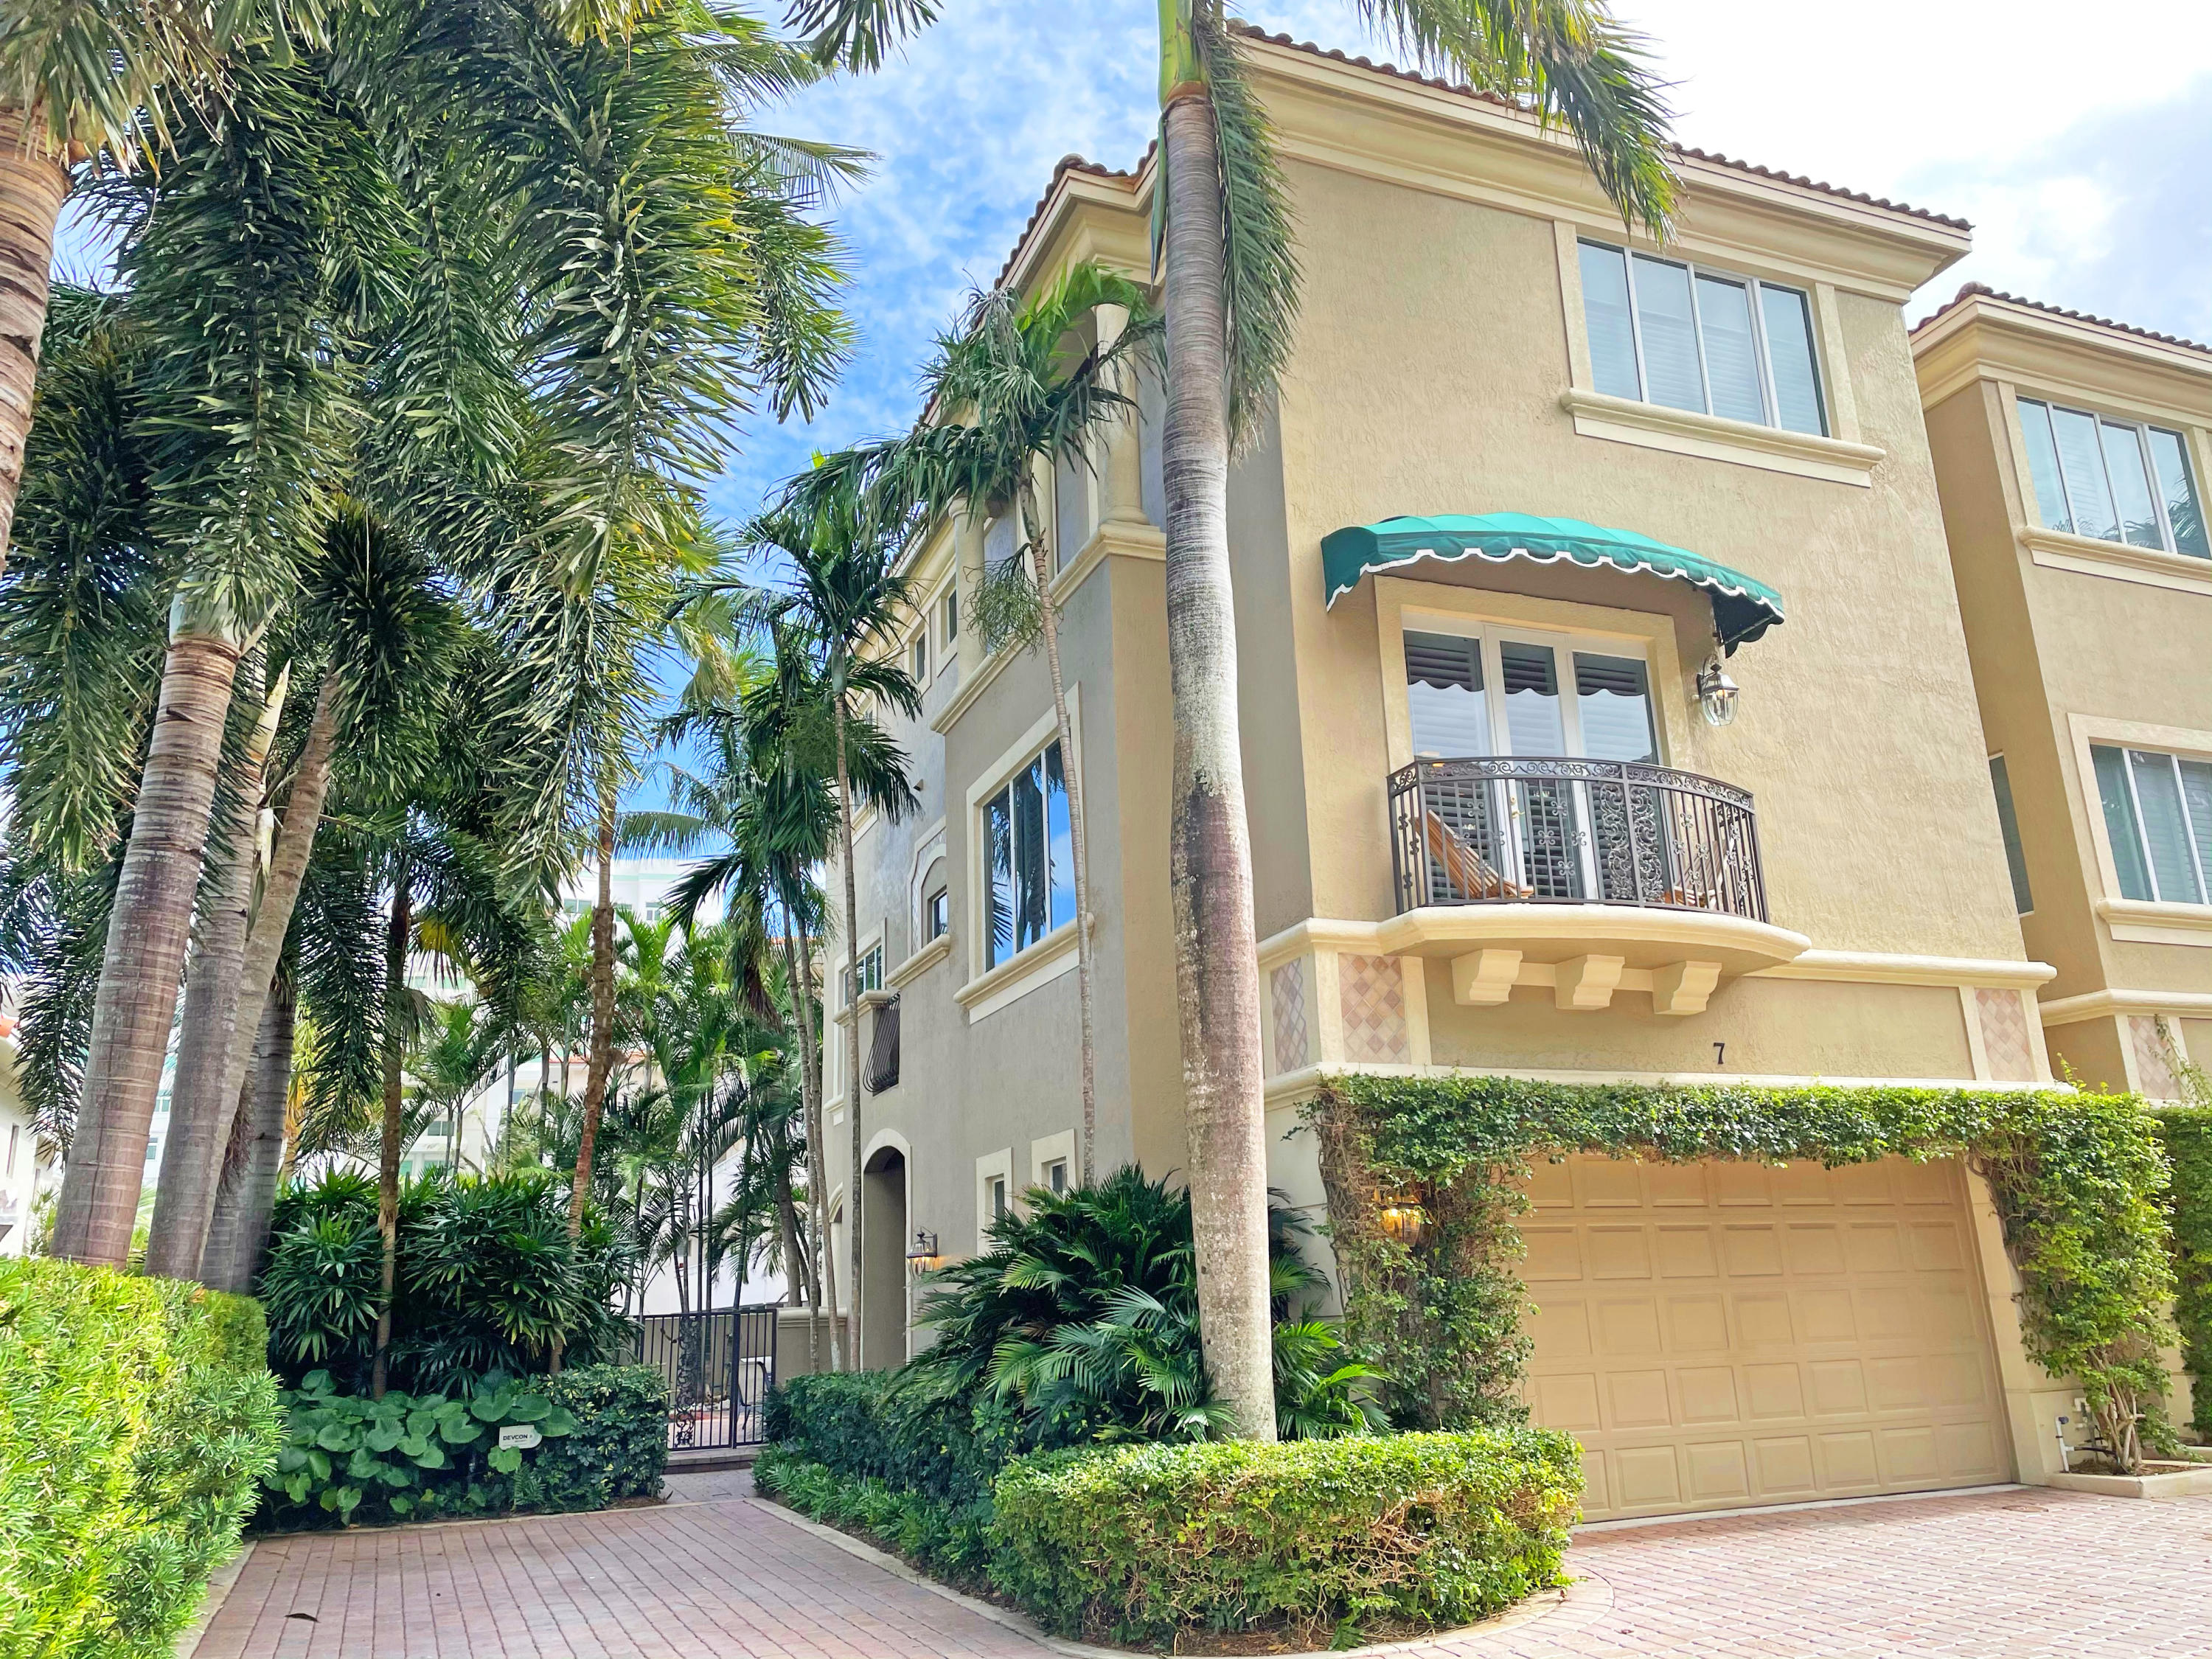 Home for sale in Saturnia By The Sea Boca Raton Florida